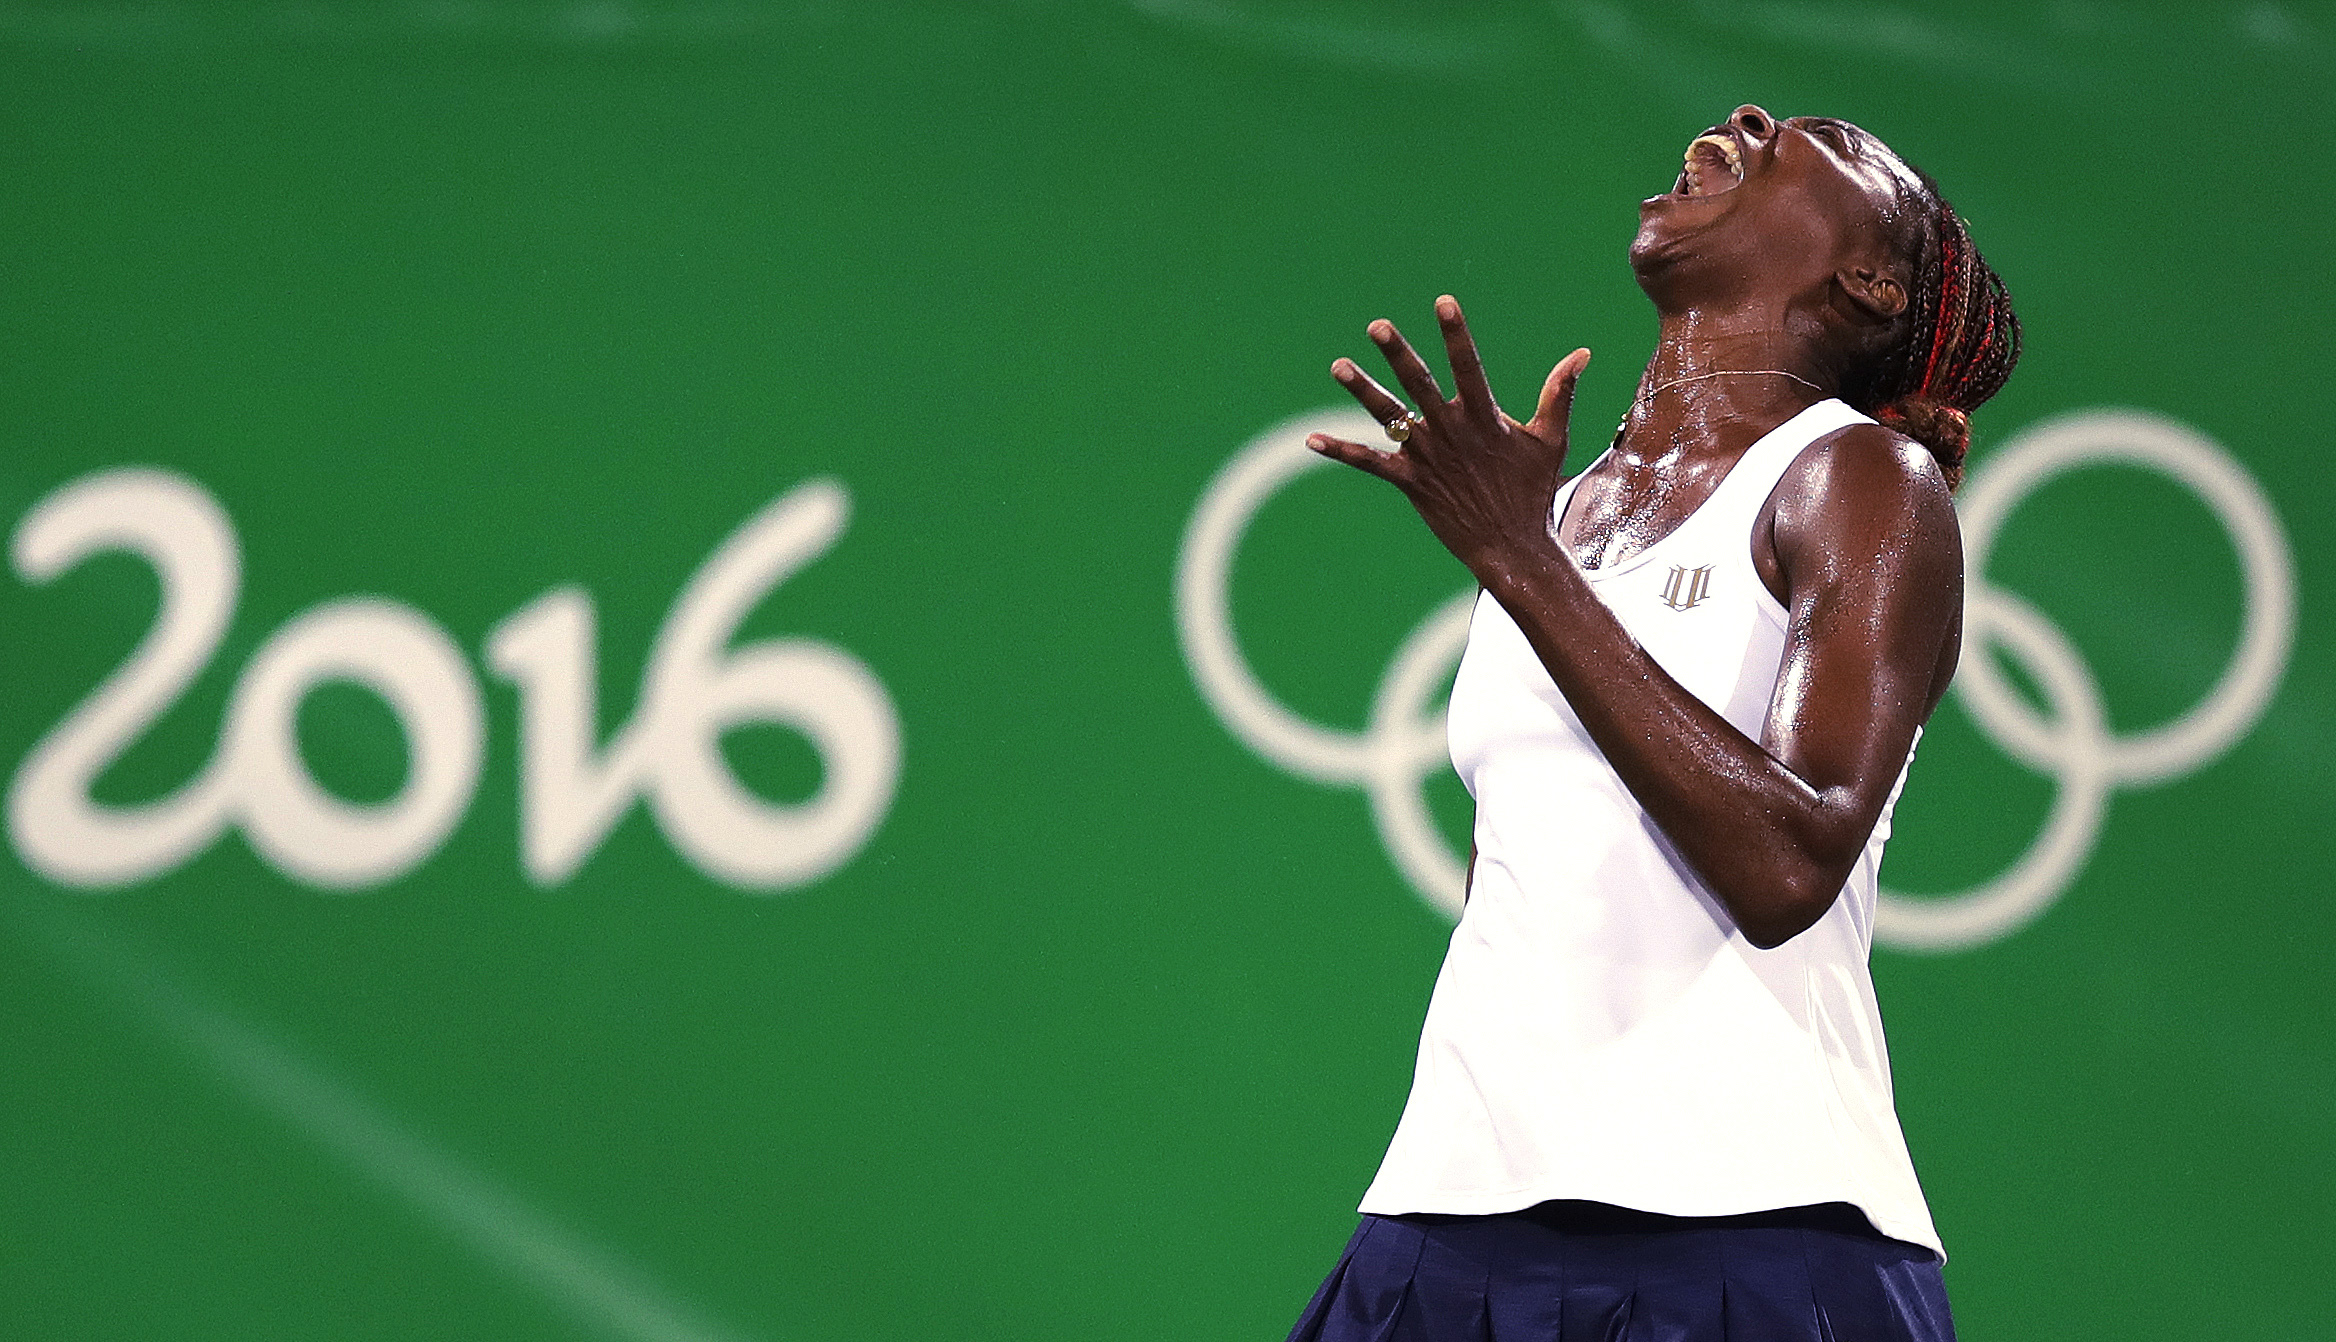 Venus Williams, of the United States, reacts after losing a point in a doubles match with her sister Serena against Lucie Safarova and Barbora Strycova, of the Czech Republic, at the 2016 Summer Olympics in Rio de Janeiro, Brazil, Sunday, Aug. 7, 2016. (A